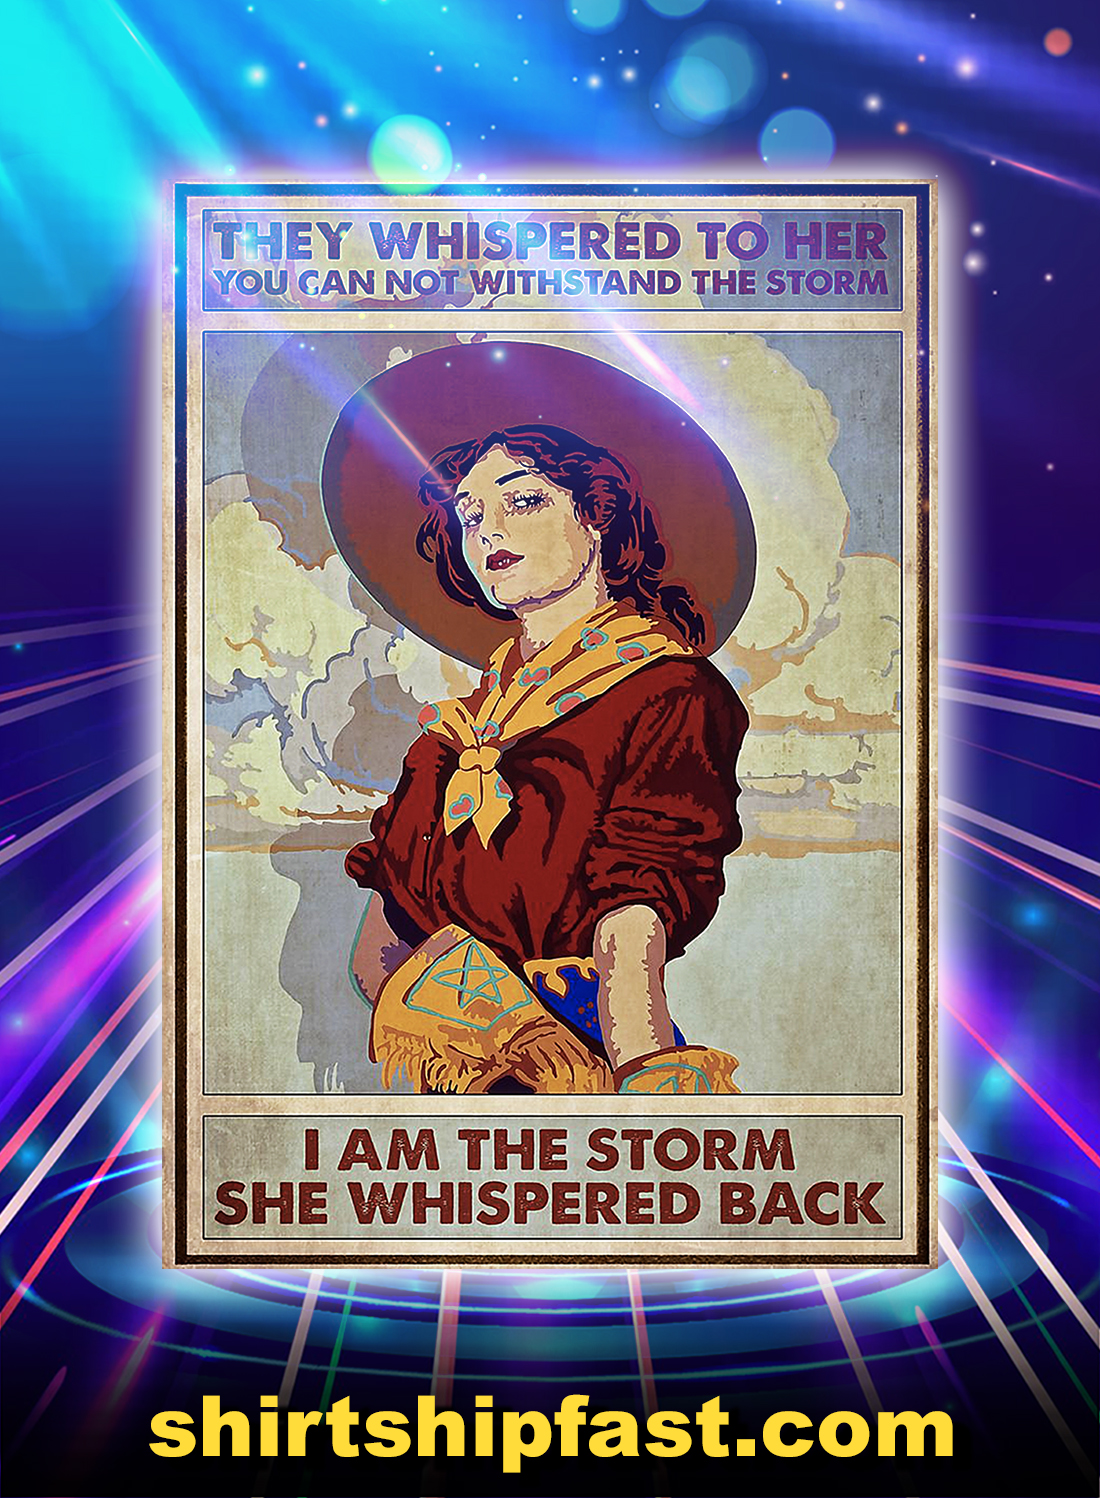 Cowgirl they whispered to her you can not withstand the storm poster - A4